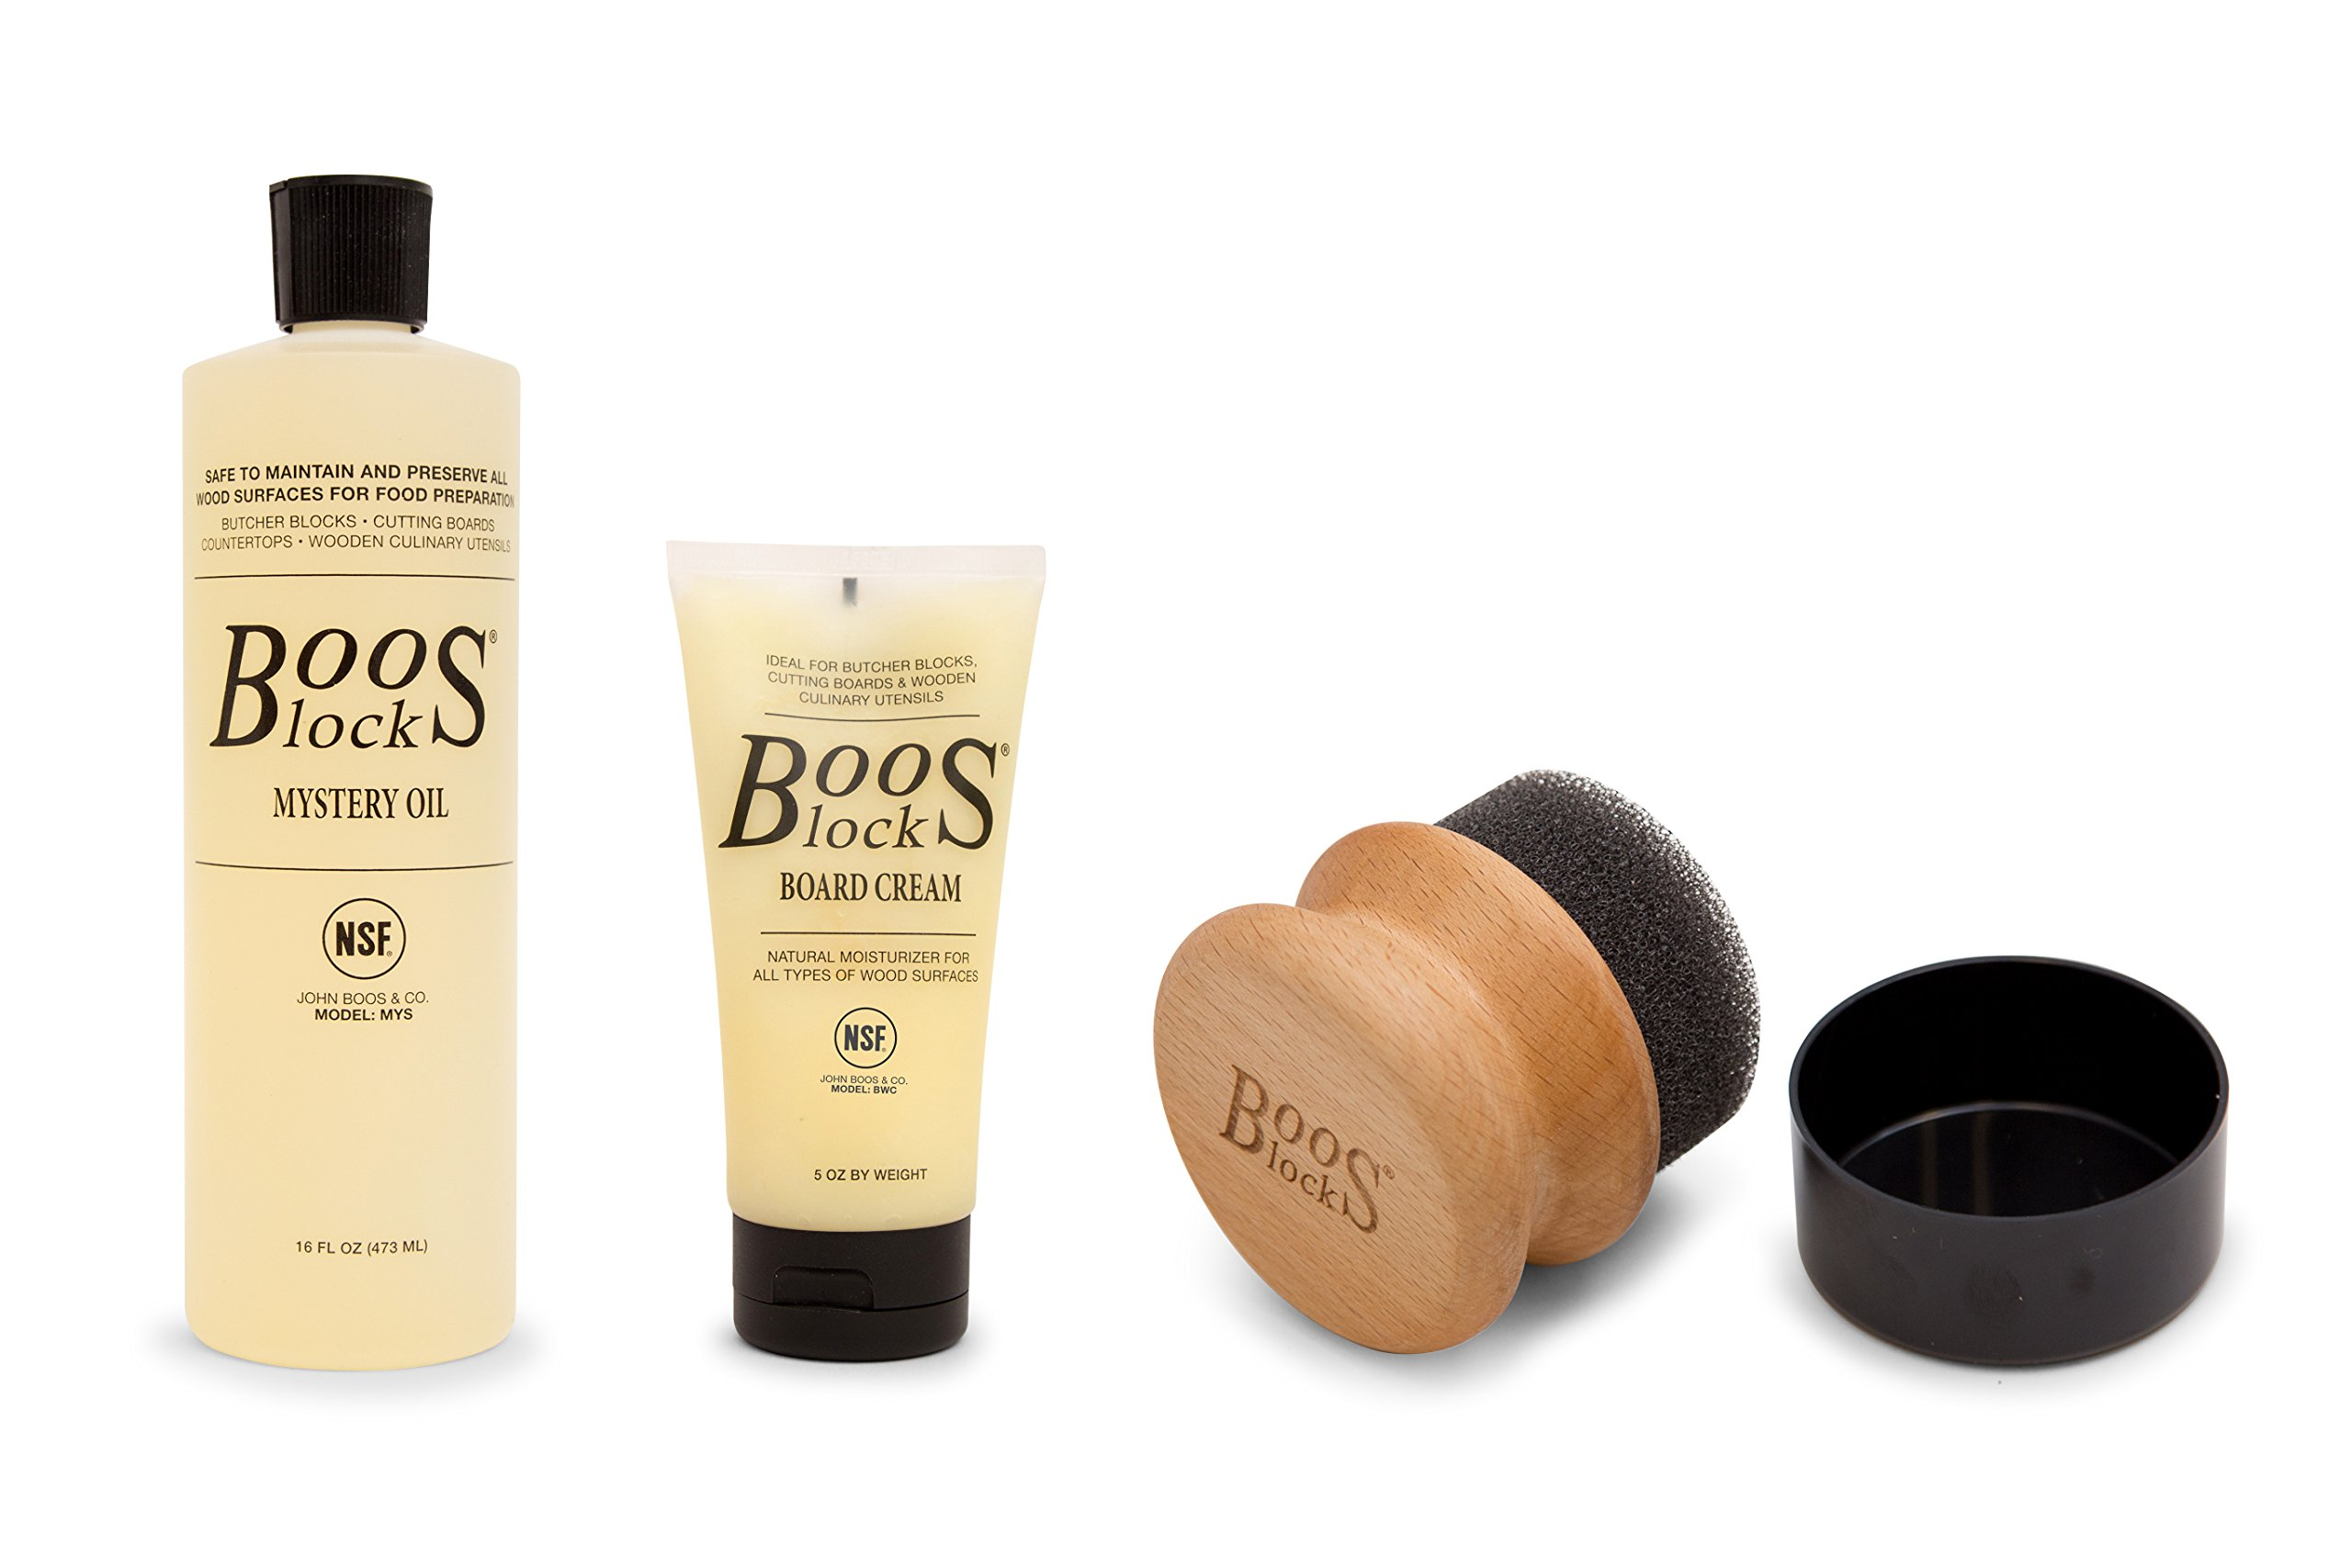 John Boos Cutting Board Care and Maintenance Set: Includes One 16 Ounce Bottle Mystery Oil, One 5 Ounce bottle Board Cream and One Round Applicator